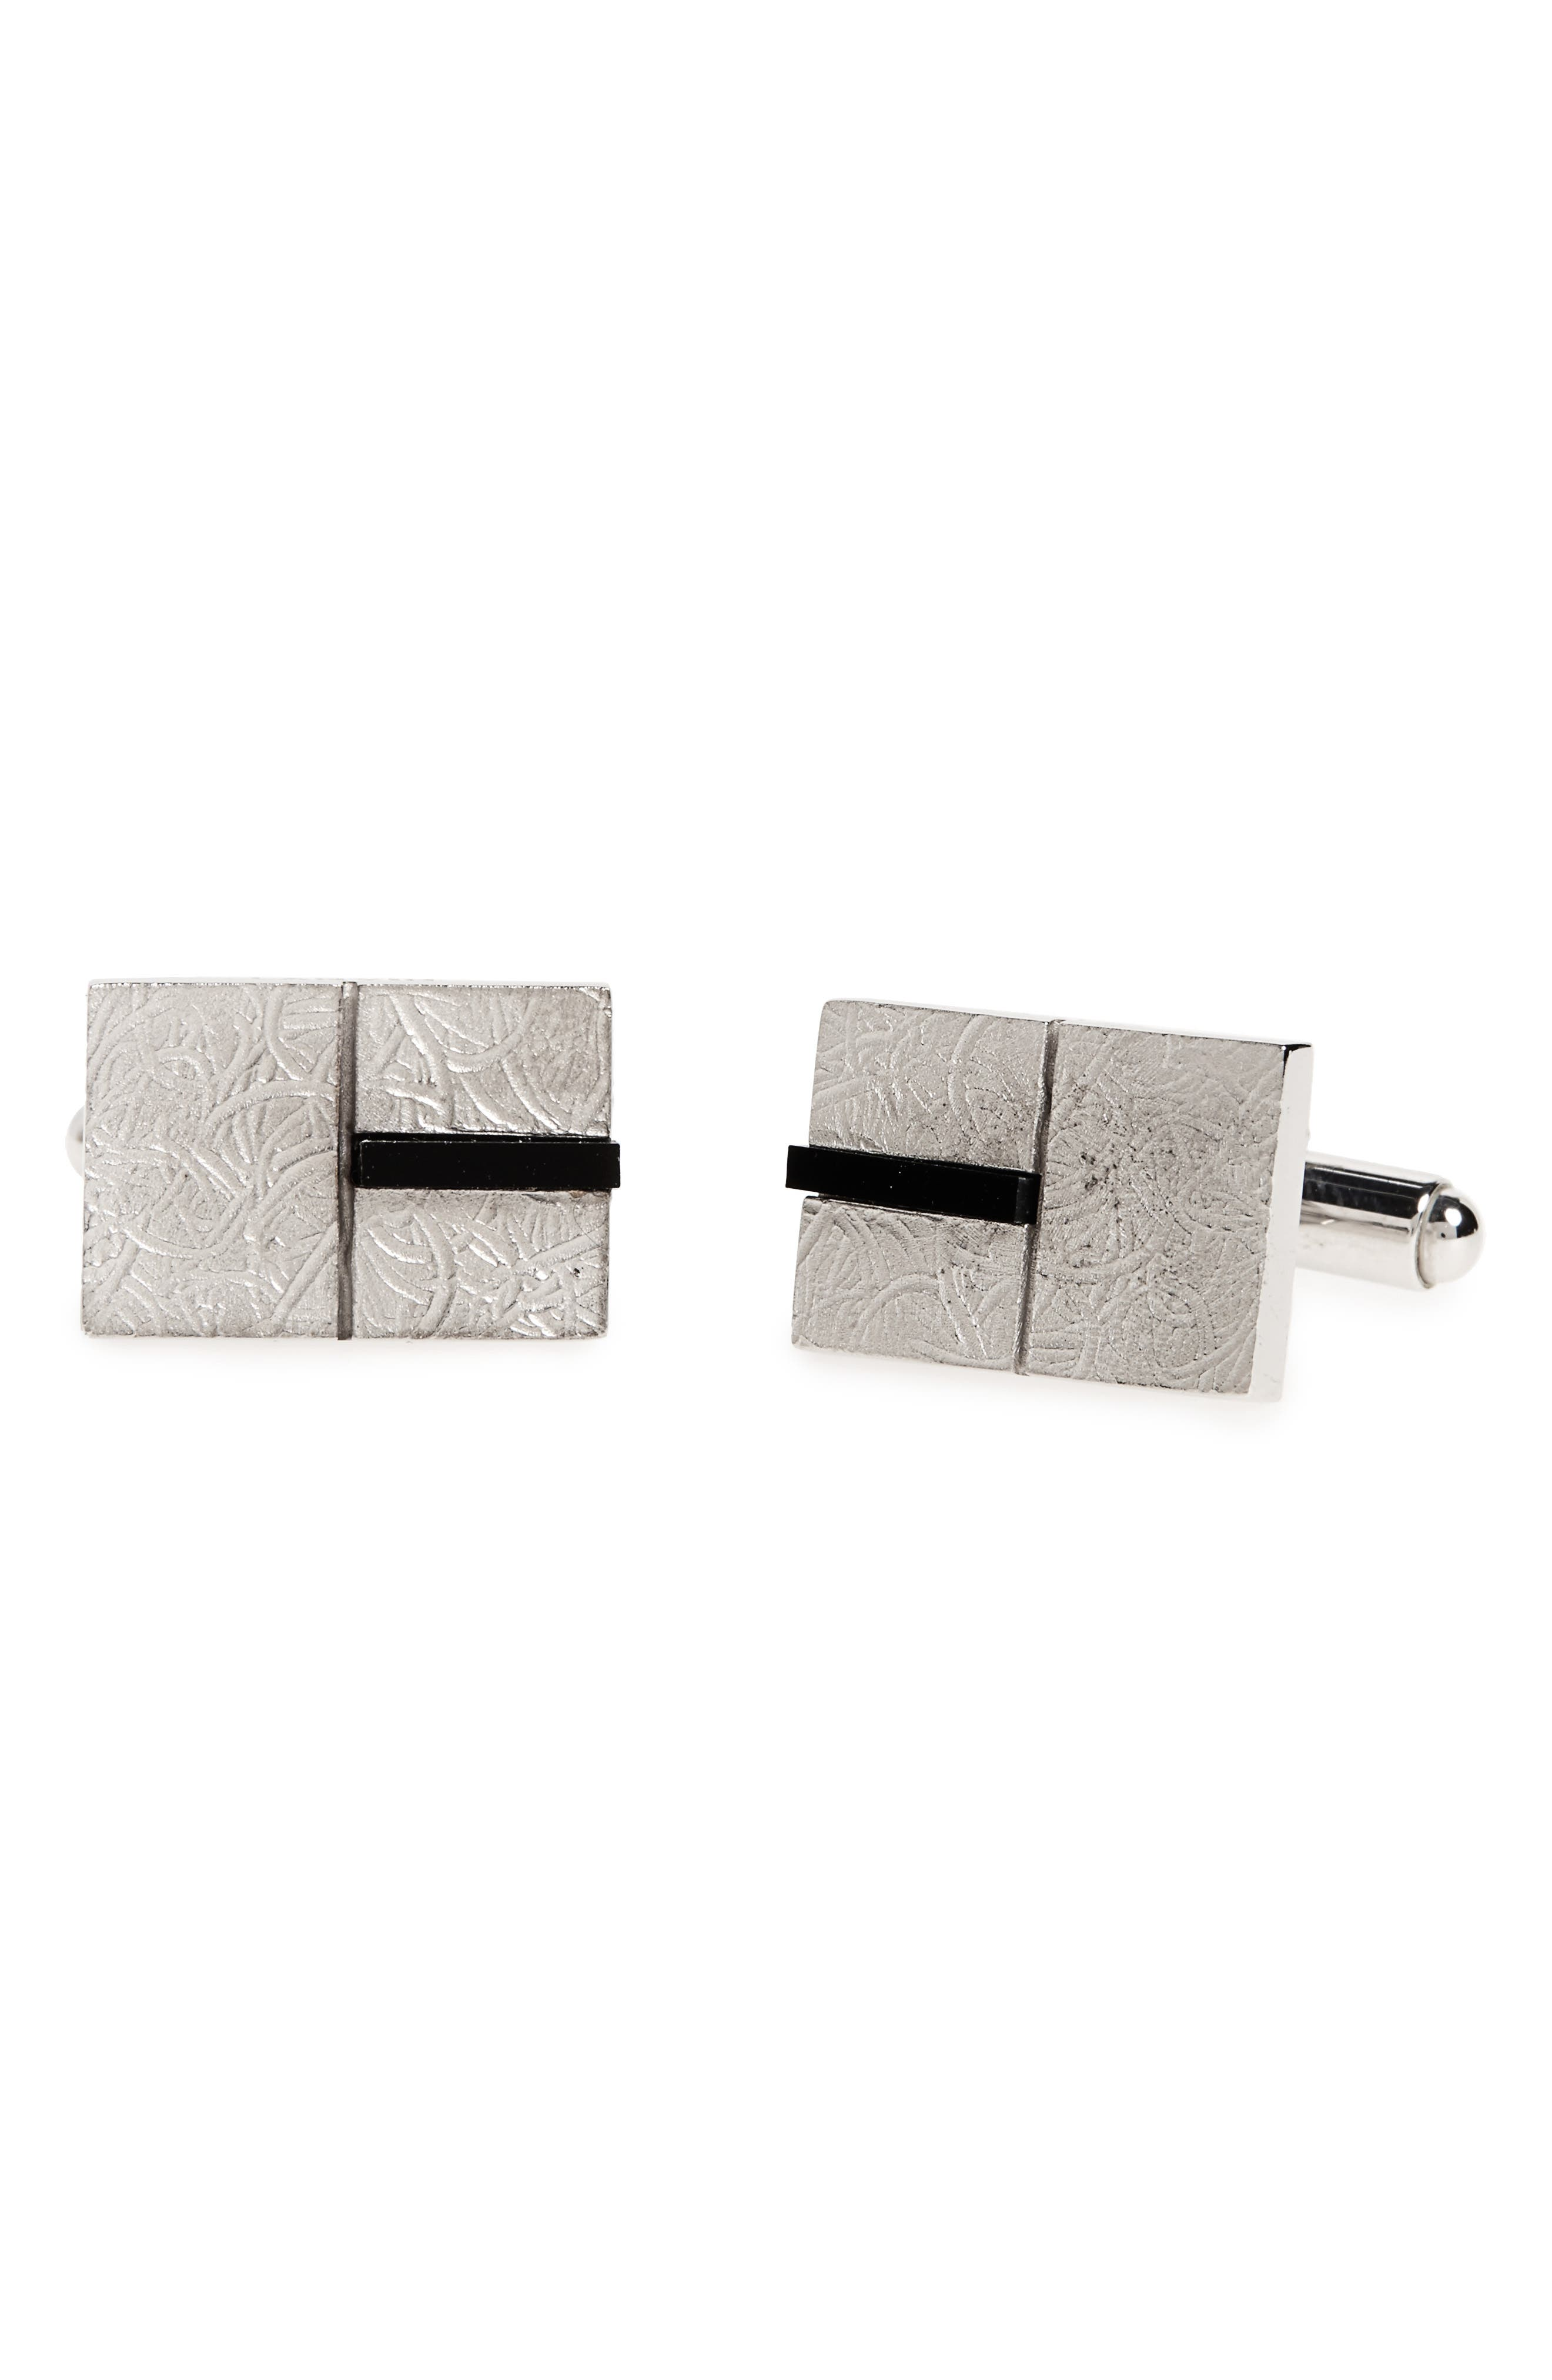 Squares Cuff Links,                             Main thumbnail 1, color,                             040